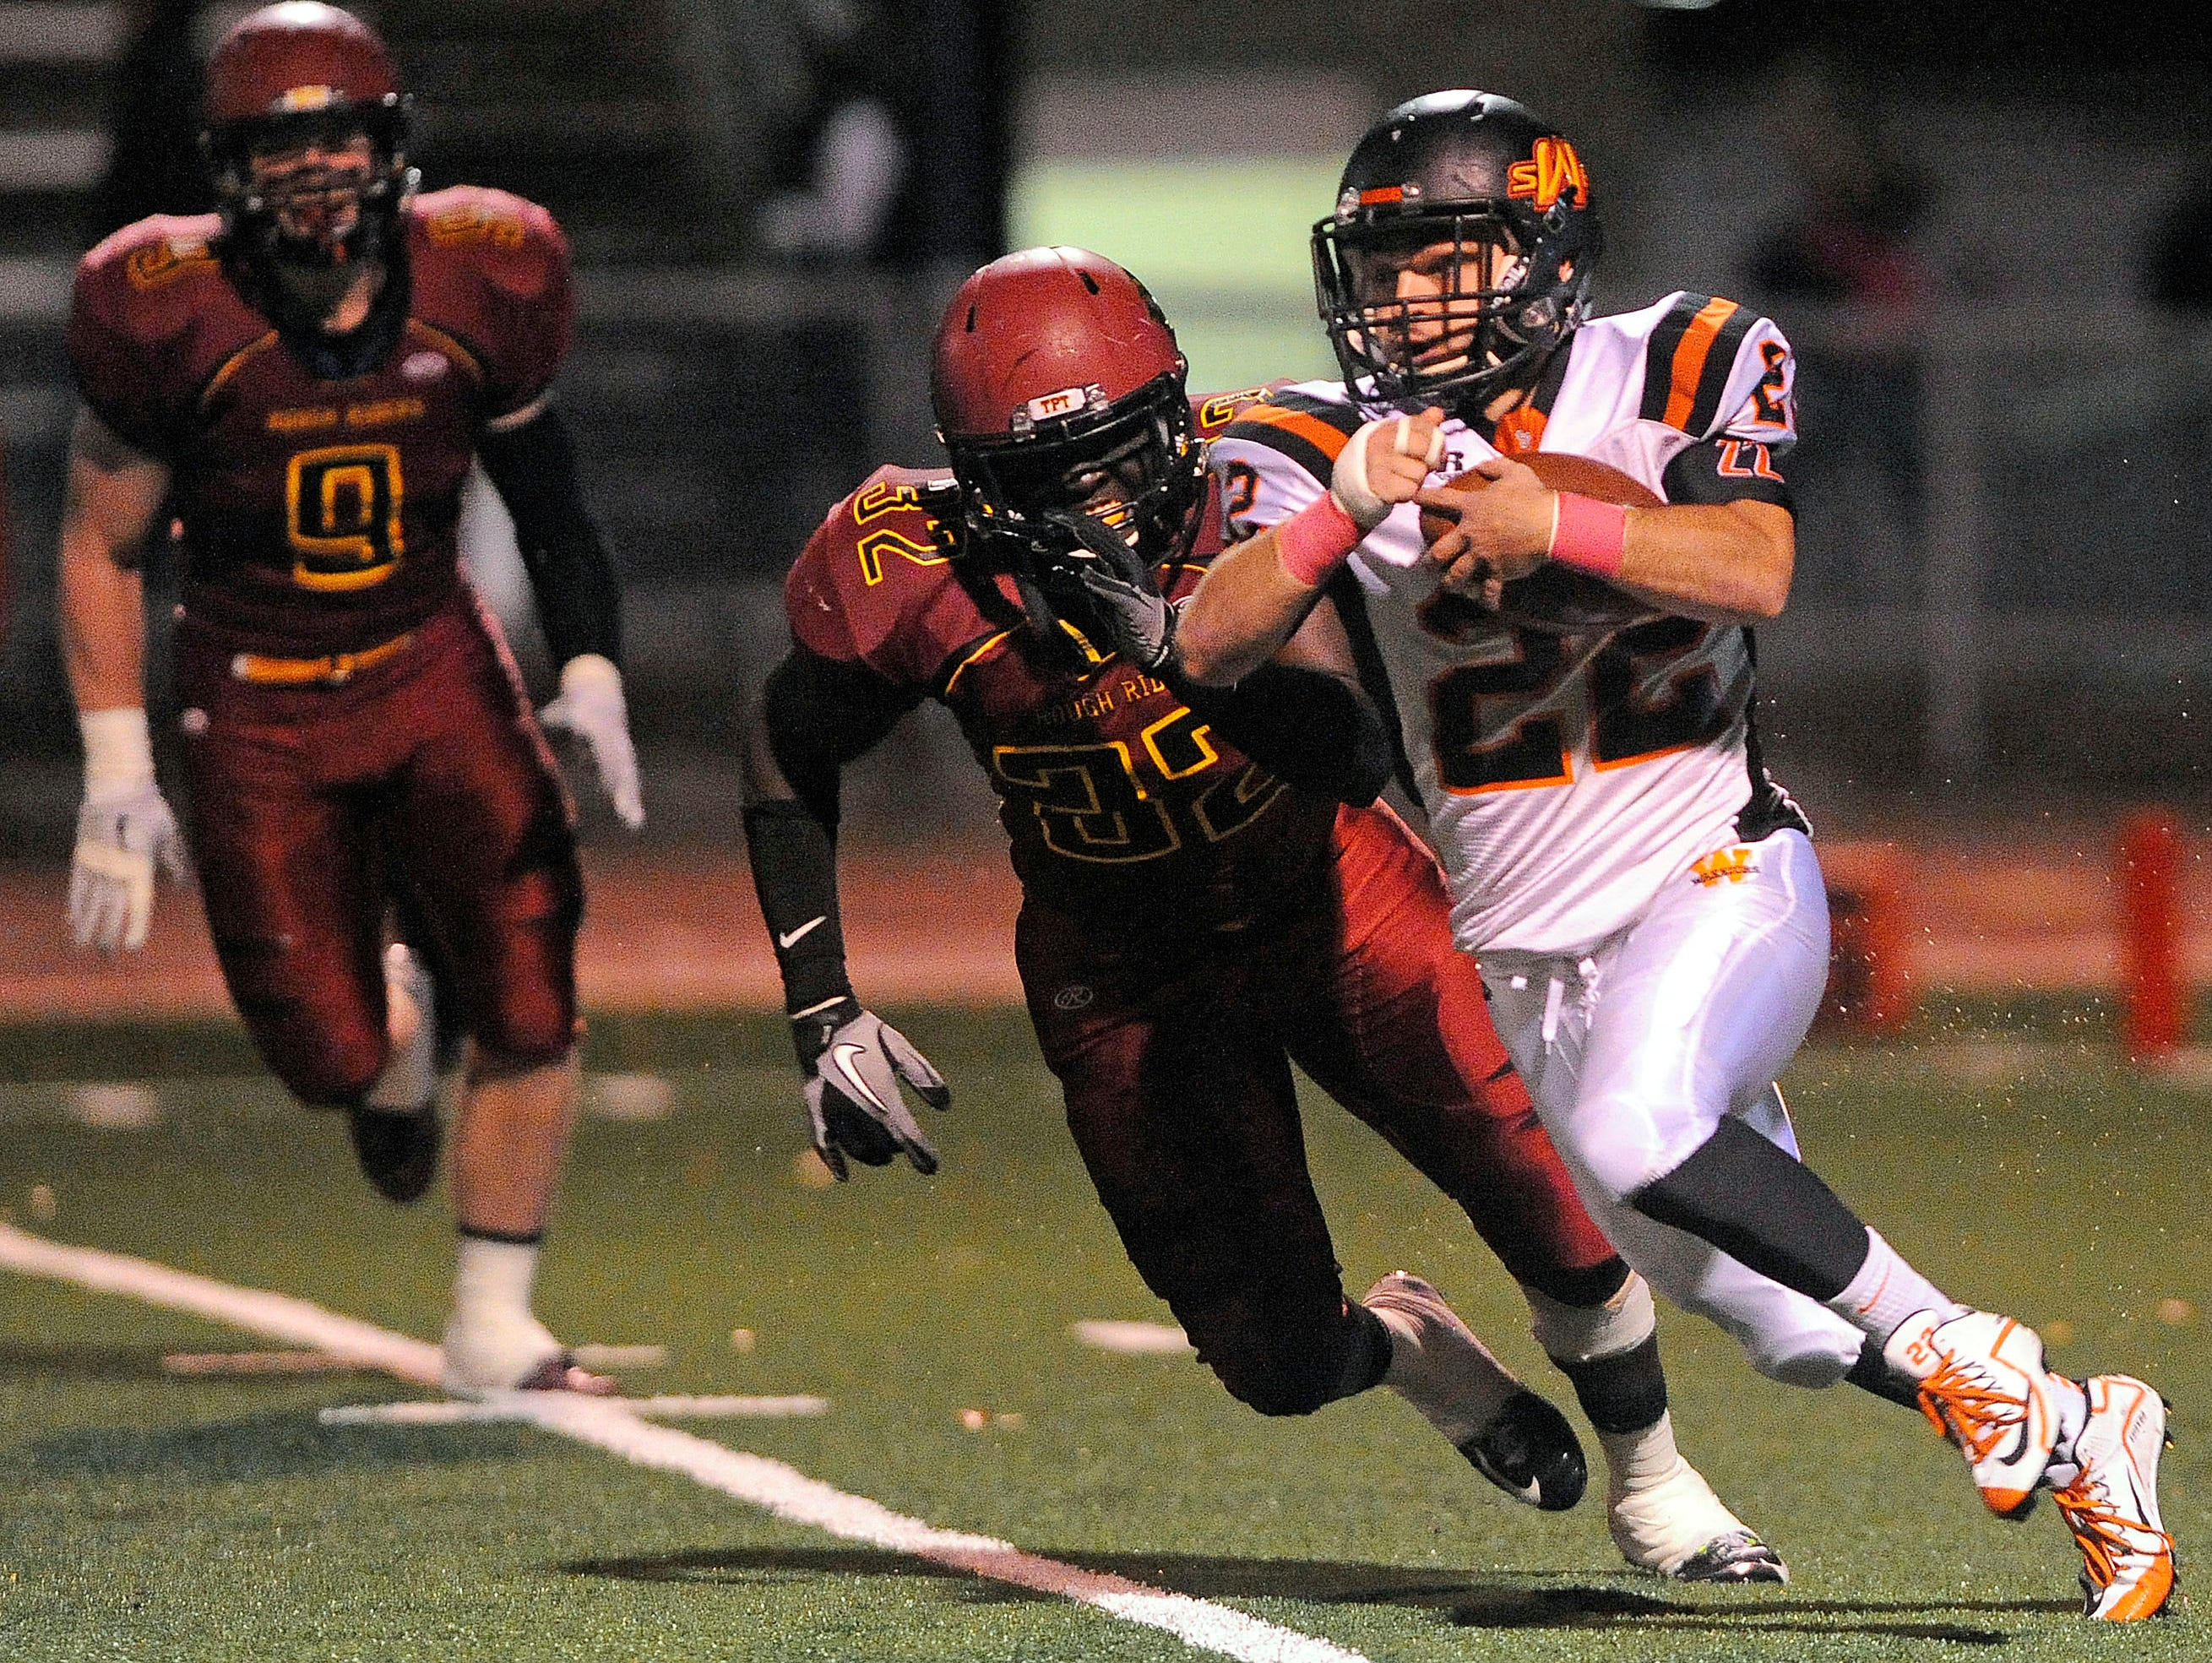 Washington's #22 Chayden Fitzsimmons runs down the field against Roosevelt's #32 Manny Christopher during football action at Howard Wood Field in Sioux Falls, S.D., Thursday, Oct. 22, 2015.